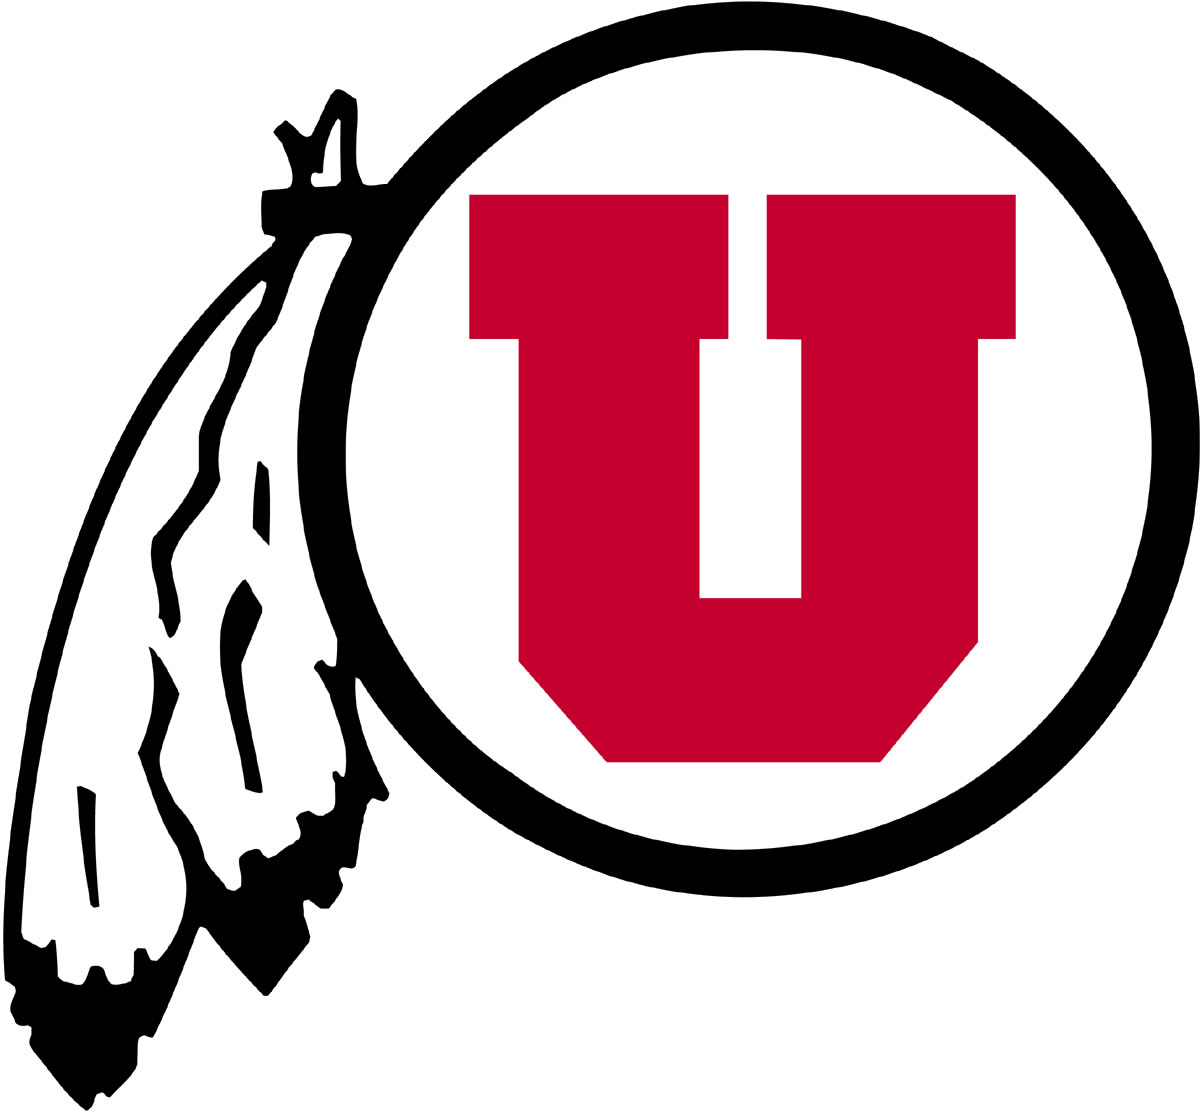 http://cdn1.bloguin.com/thestudentsection/wp-content/uploads/sites/165/2014/10/Utah-logo.jpg